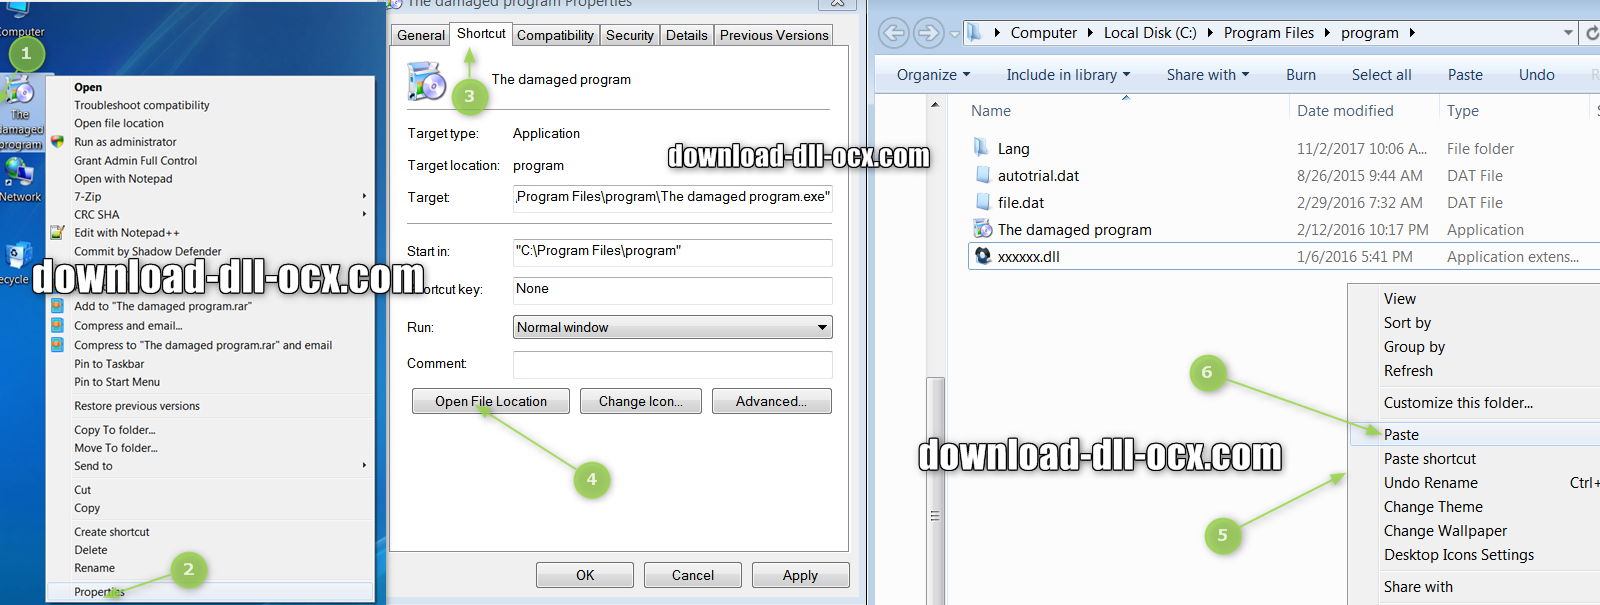 how to install IPathObject.dll file? for fix missing